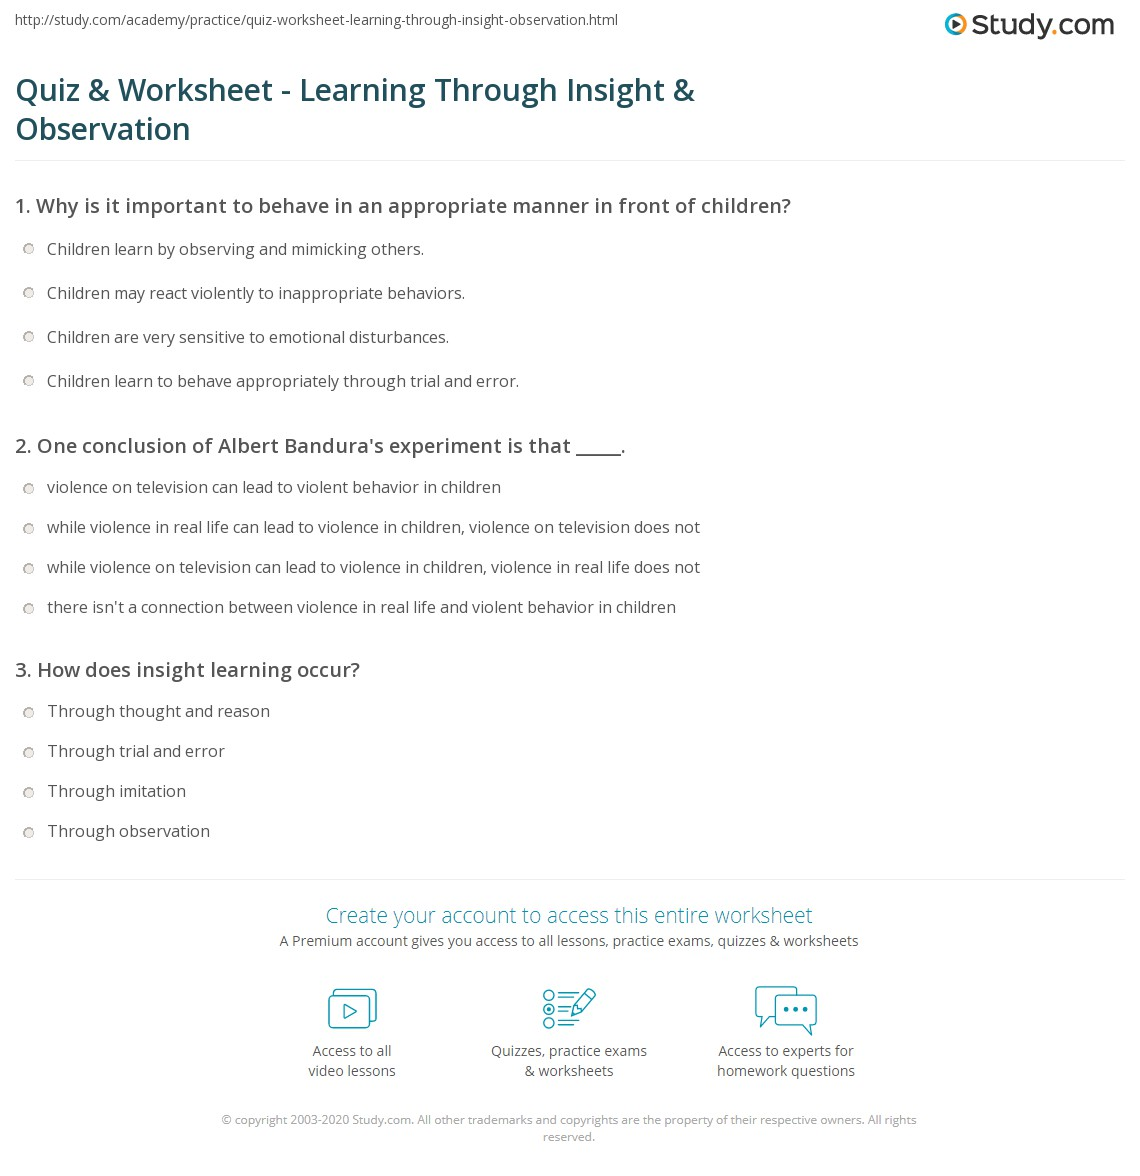 Quiz & Worksheet - Learning Through Insight & Observation | Study com